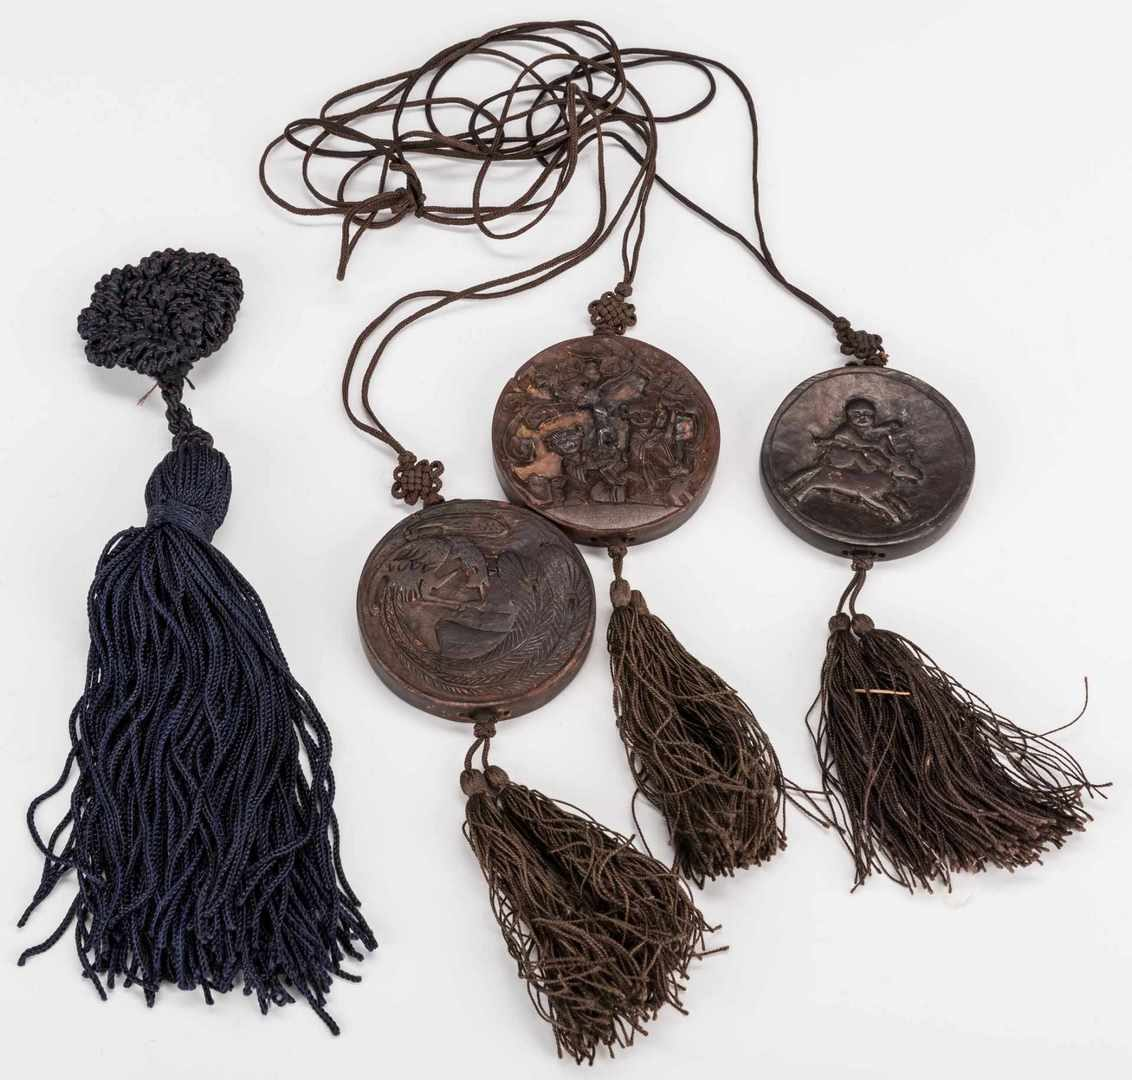 Lot 203: 14 Asian items, inc. Shoes, Clothing, Pendants